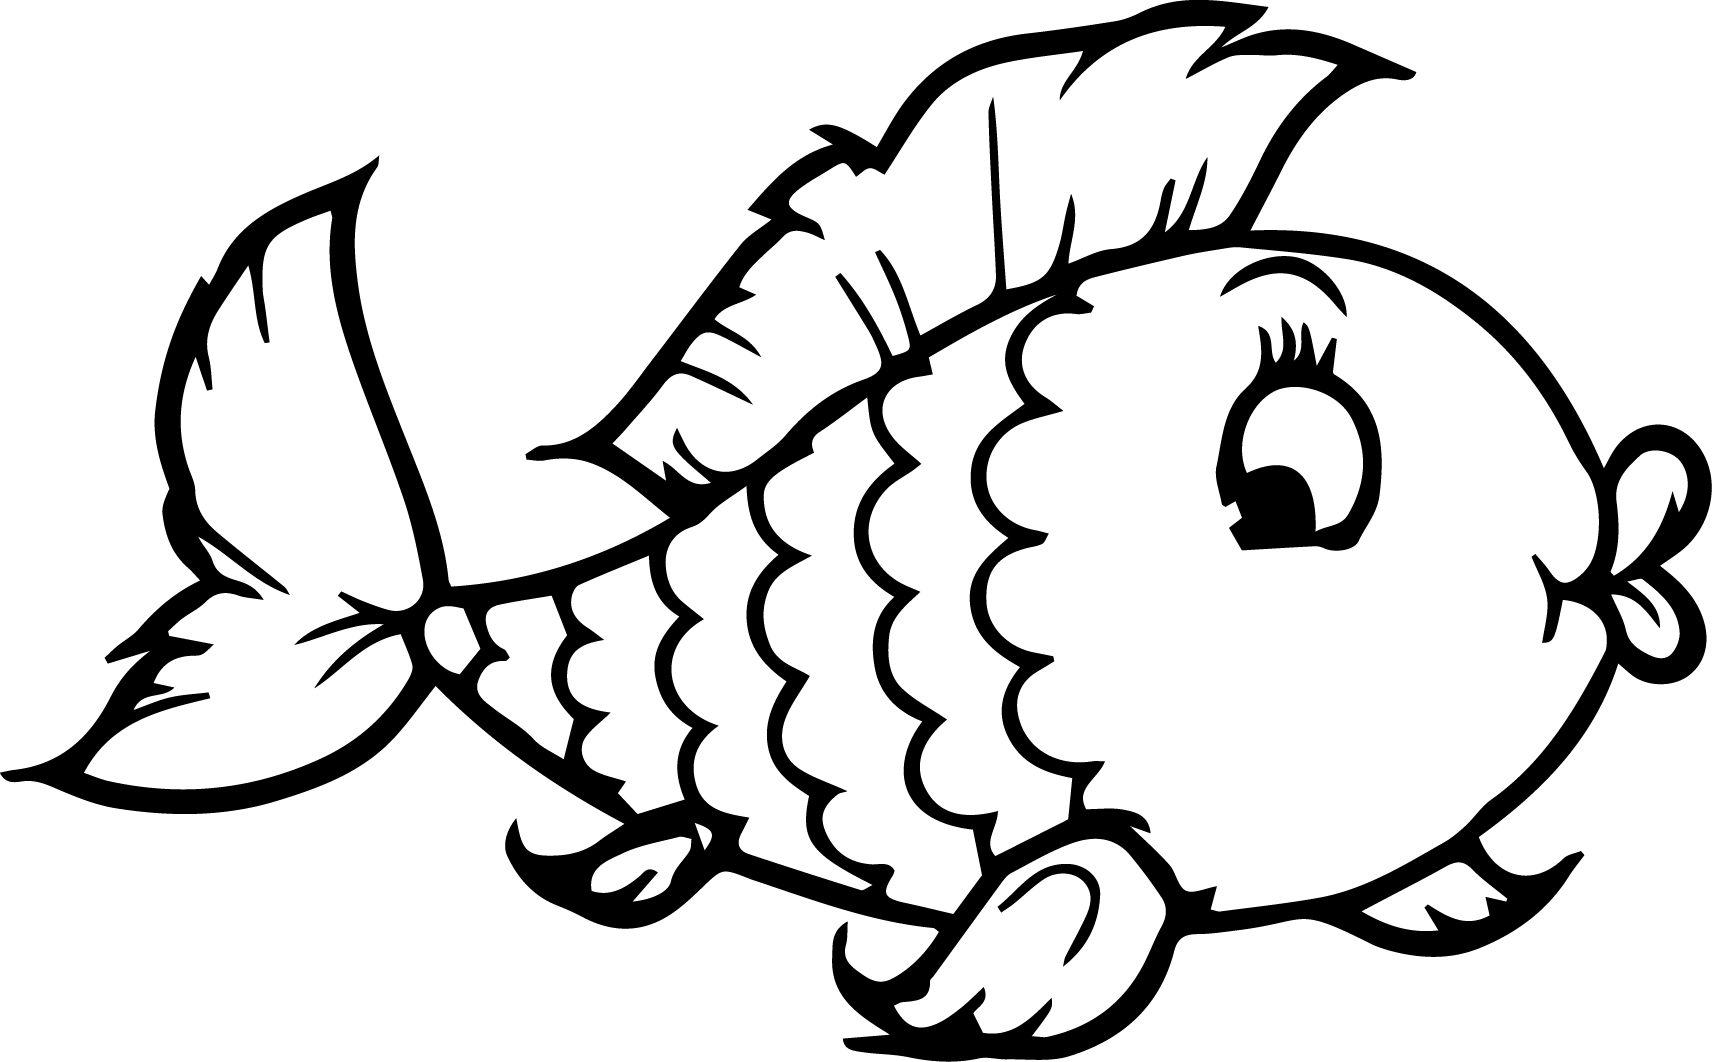 goldfish coloring free printable goldfish coloring pages for kids coloring goldfish 1 1